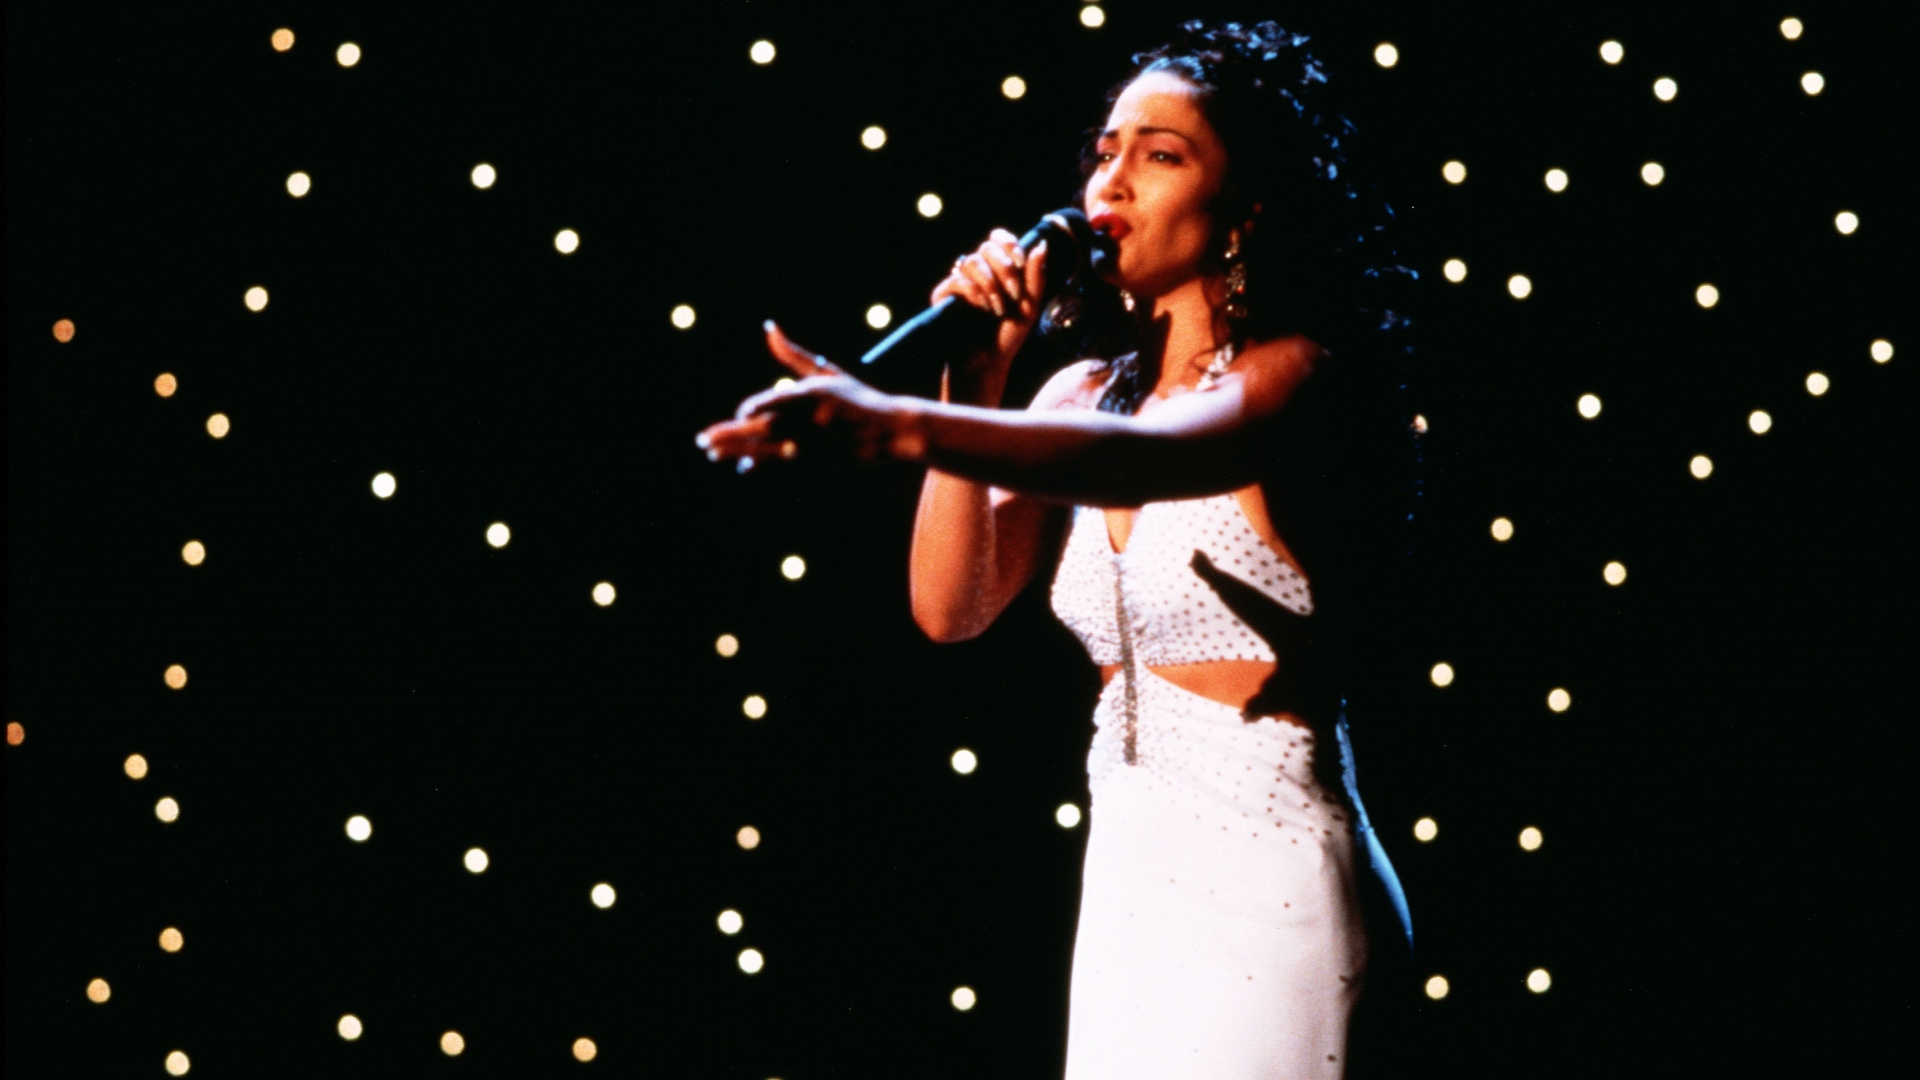 Jennifer Lopez as Selena Quintanilla in 'Selena'.